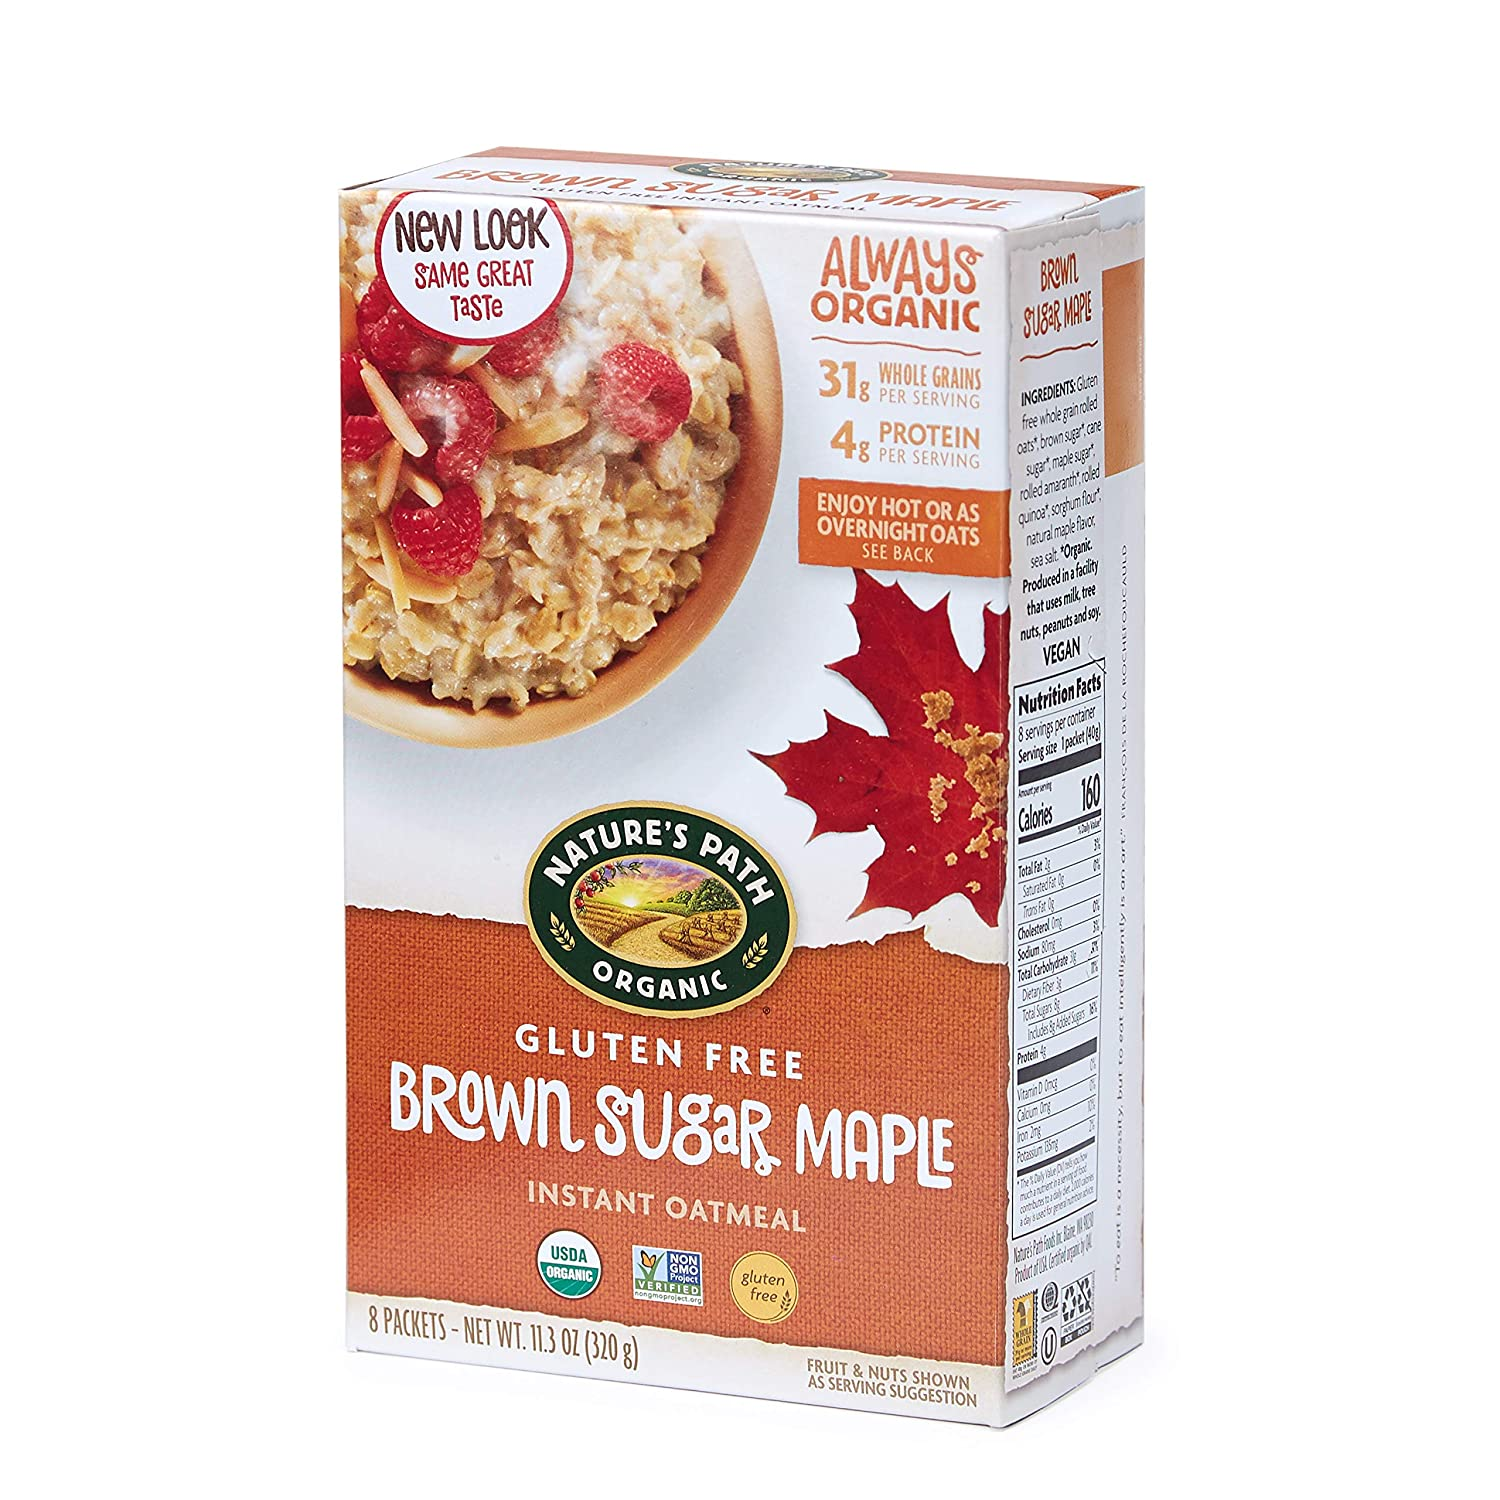 Nature's Path Brown Sugar Maple Instant Oatmeal, Healthy, Organic & Gluten Free, 8 Pouches per Box, 11.3 Ounces (Pack of 6)